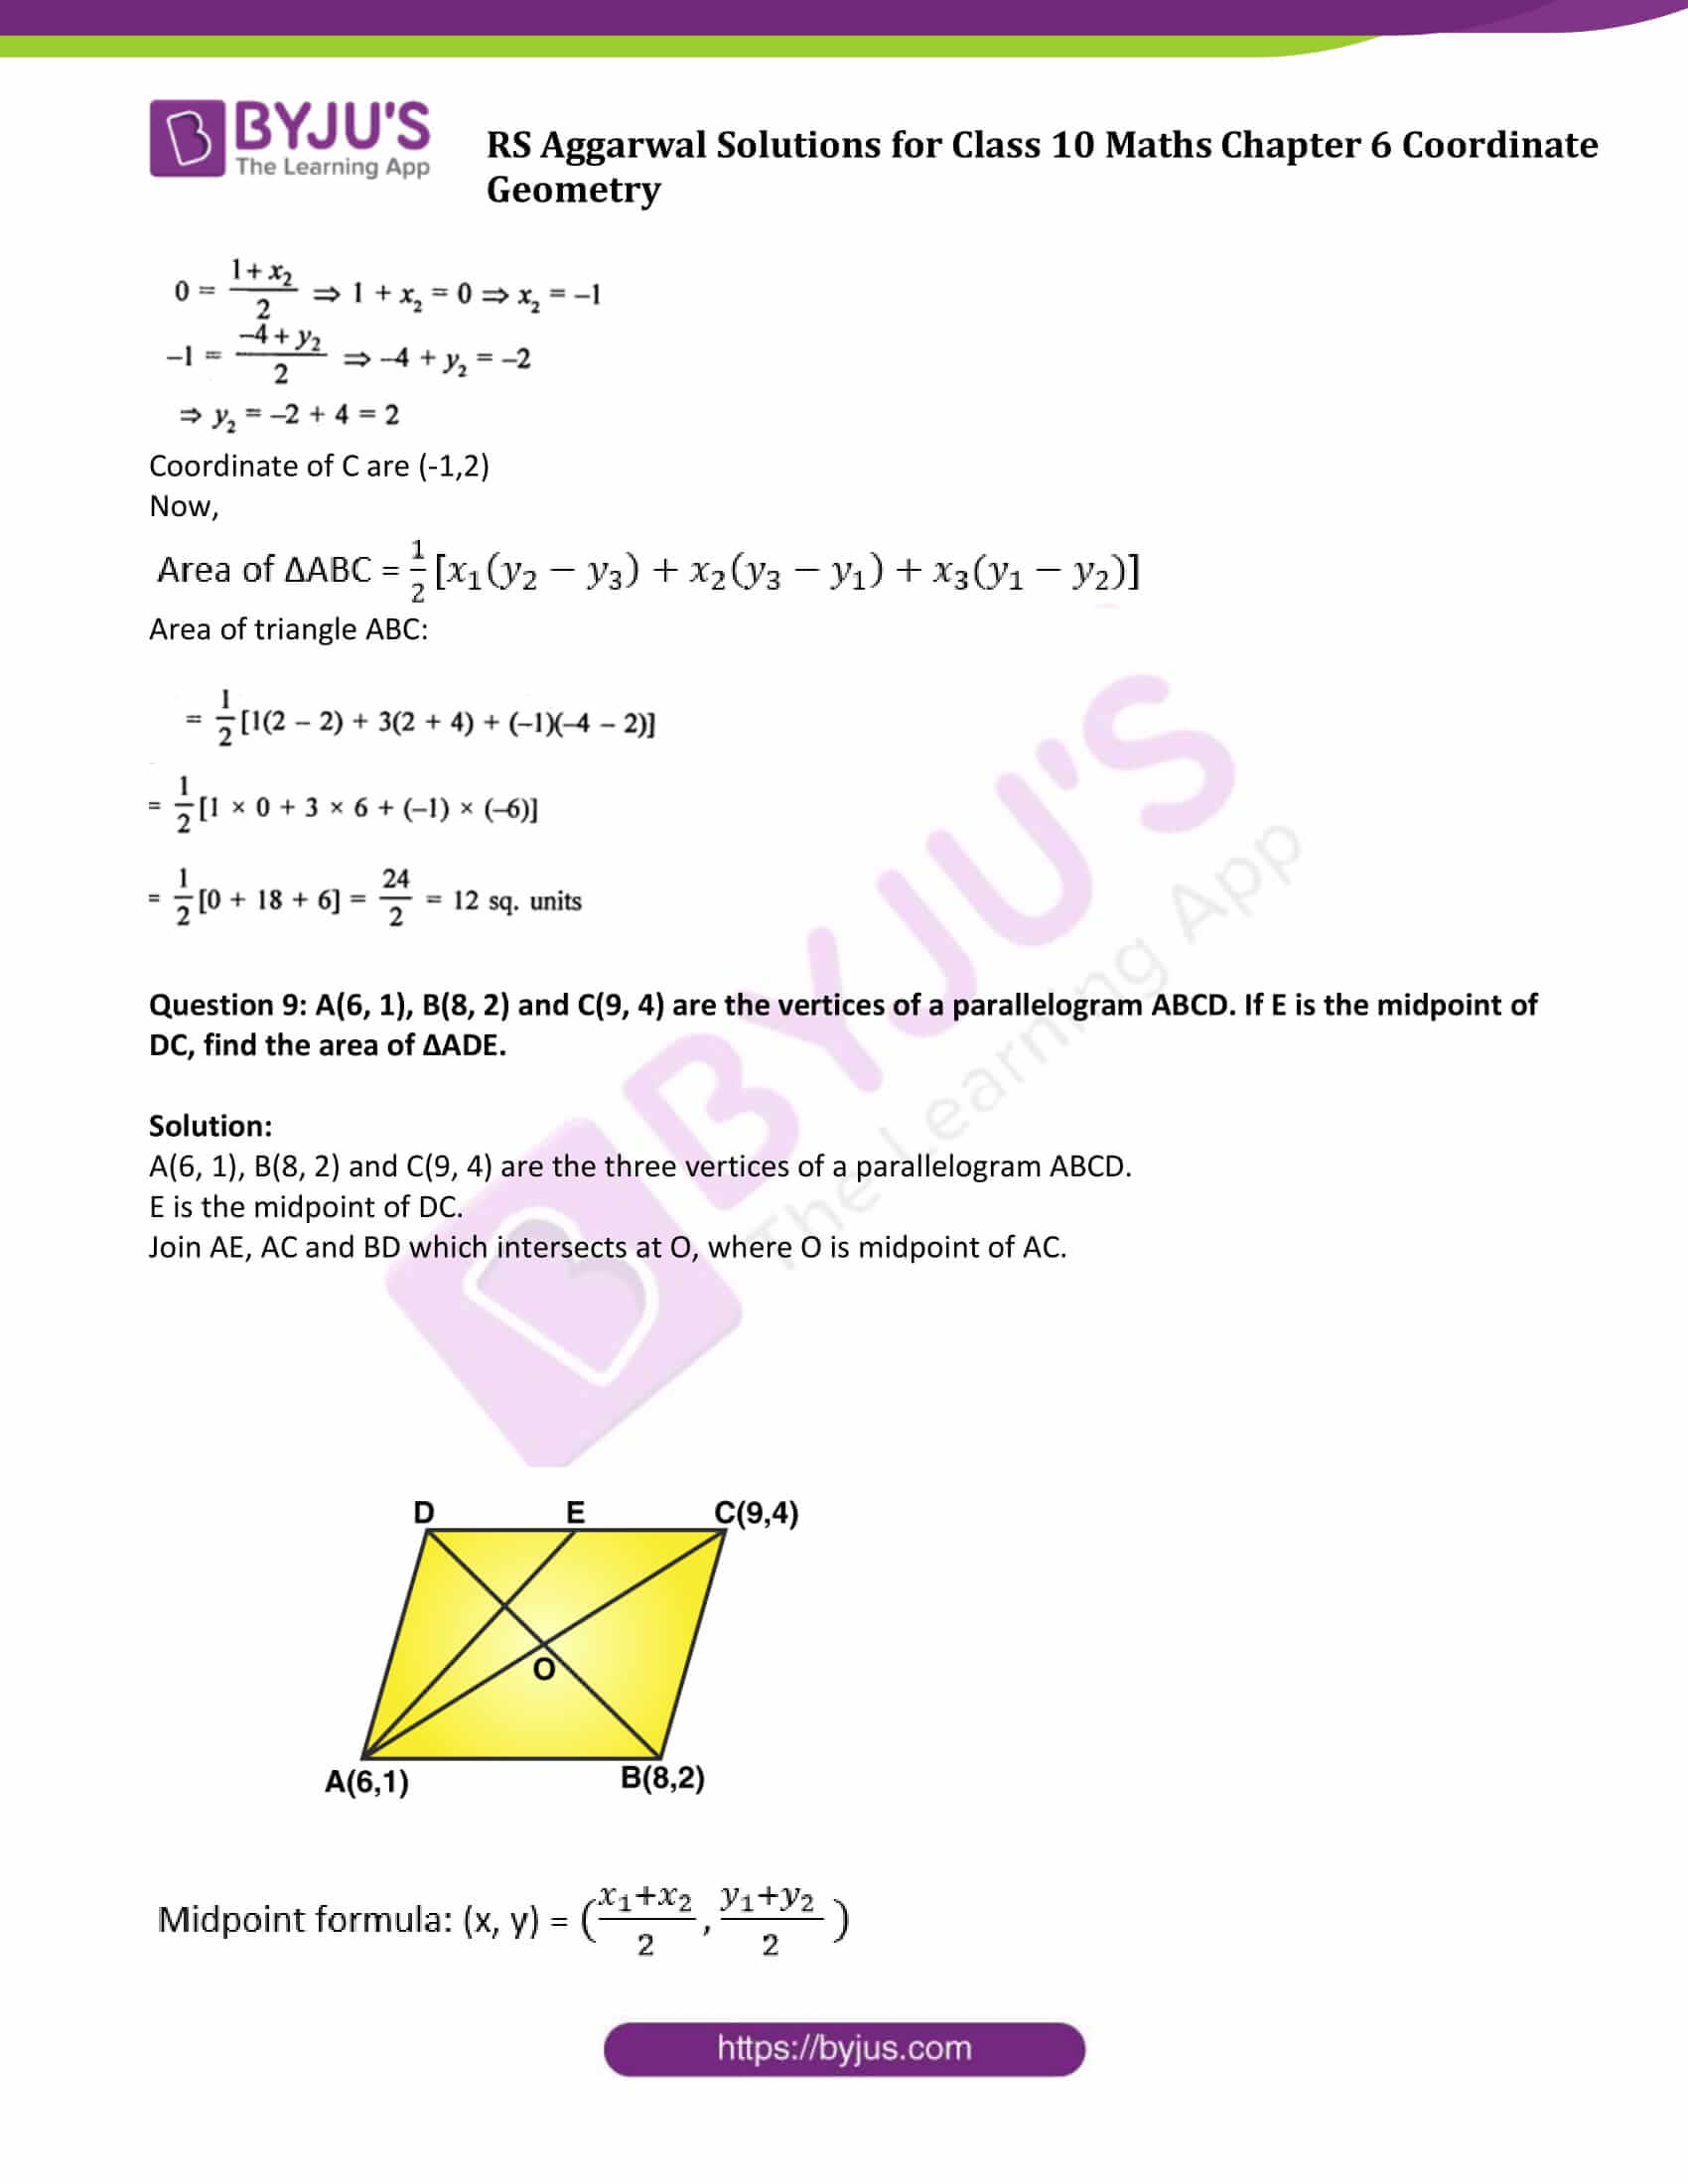 RS Aggarwal Sol class 10 Maths Chapter 6C